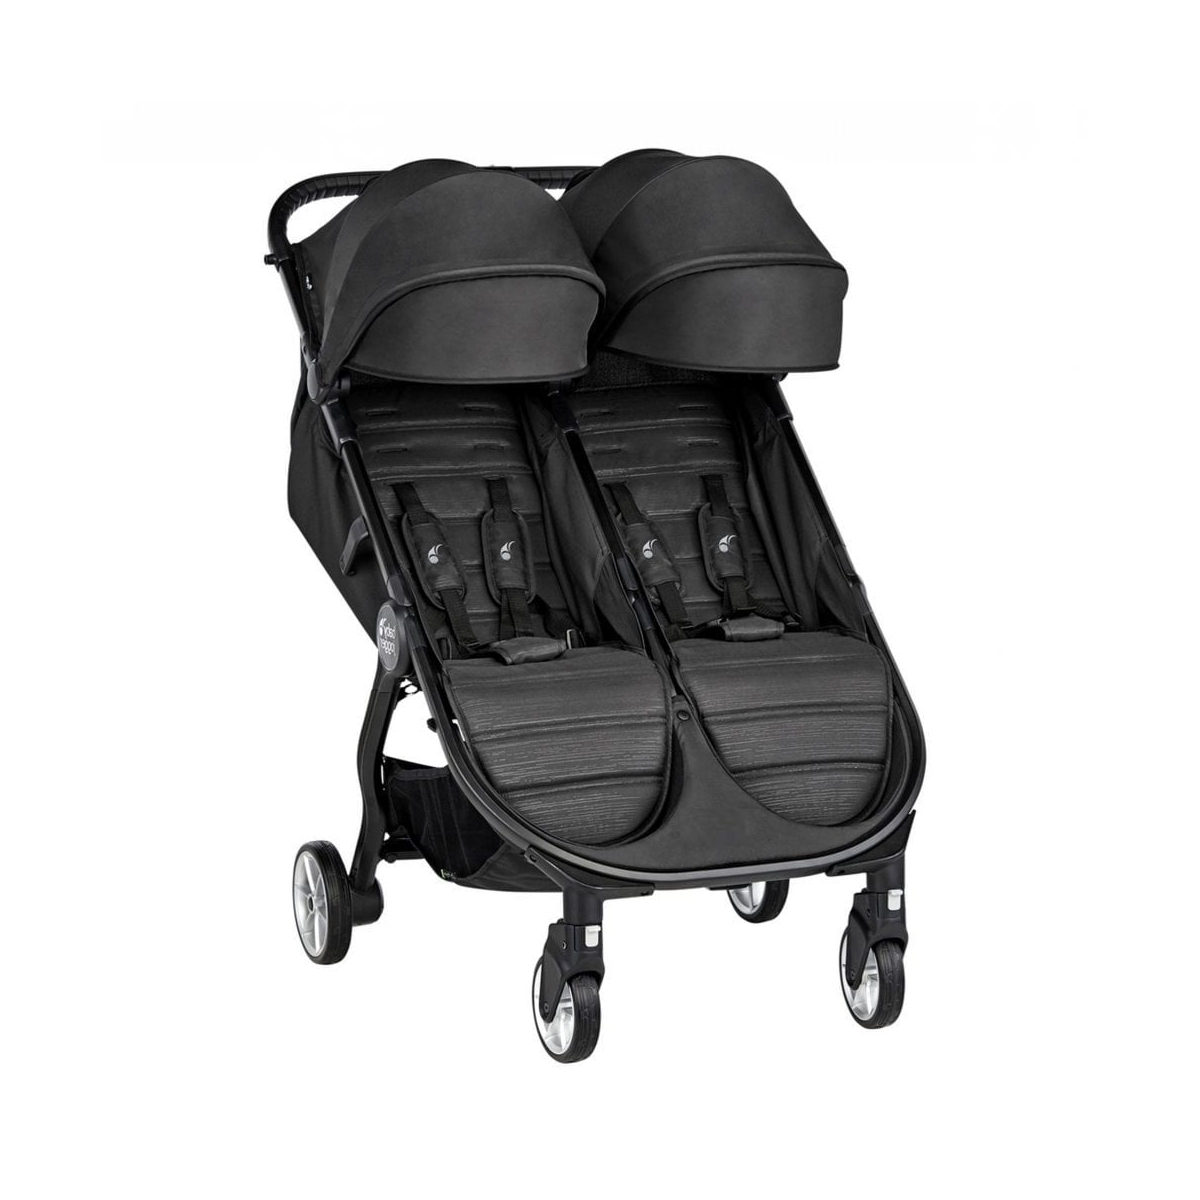 Baby Jogger City Tour 2 Double Stroller-Pitch Black